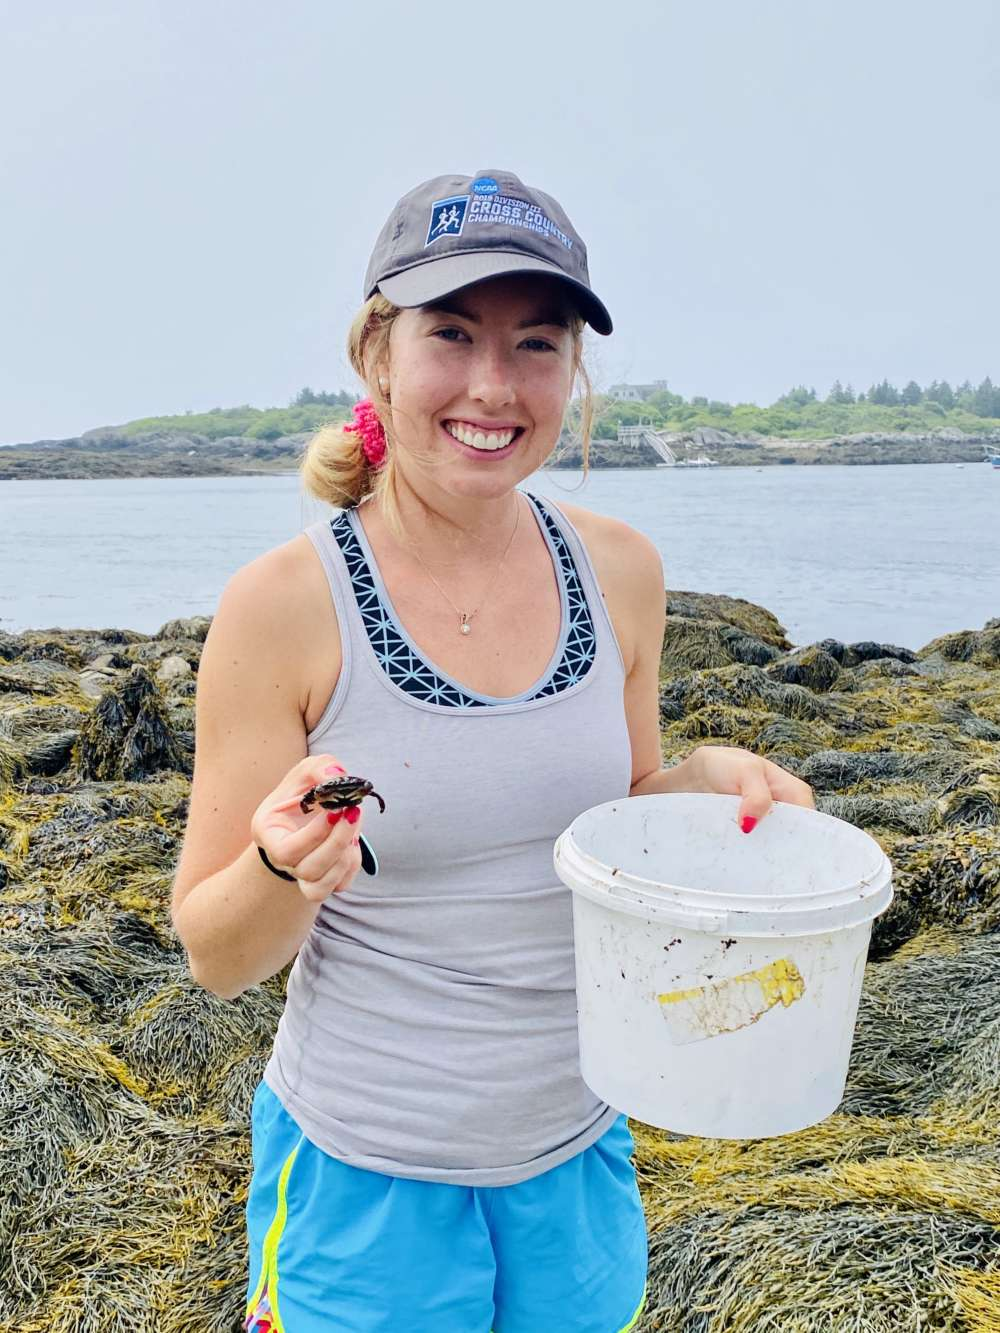 Phoebe Oehmig, 2020 research intern at the Wells Reserve